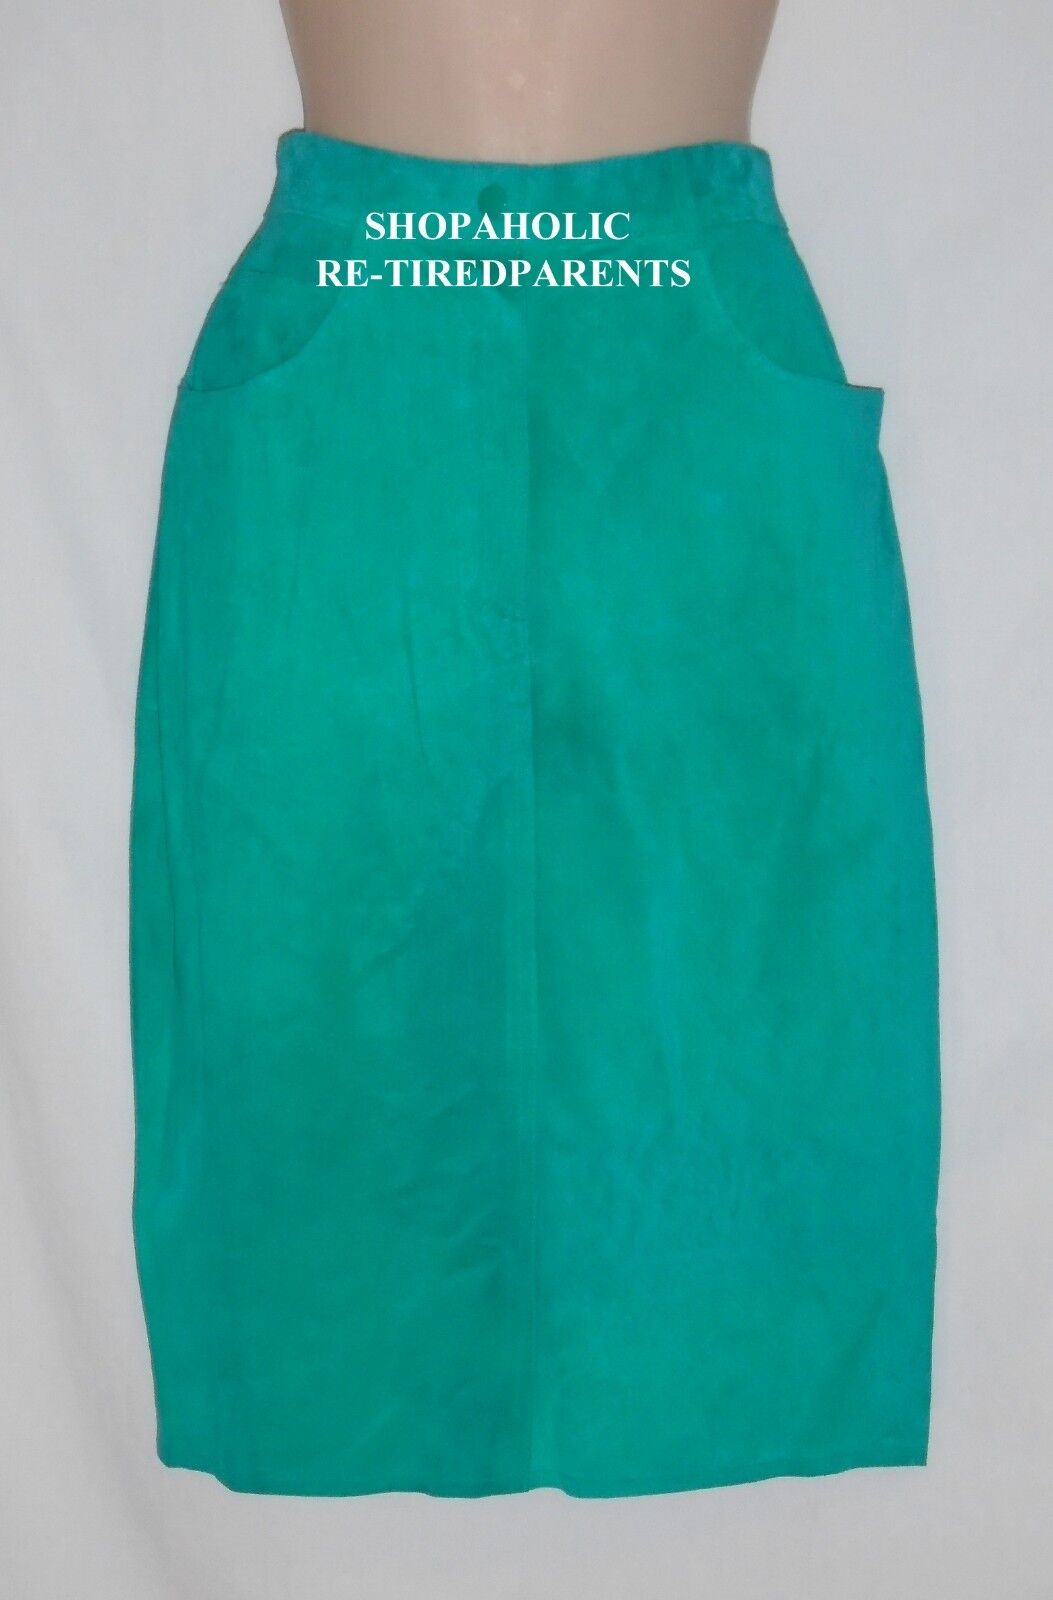 PIA RUCCI – SKIRT – GENUINE SUEDE LEATHER – GREEN – LINED - SIZE 12 - NWT  160